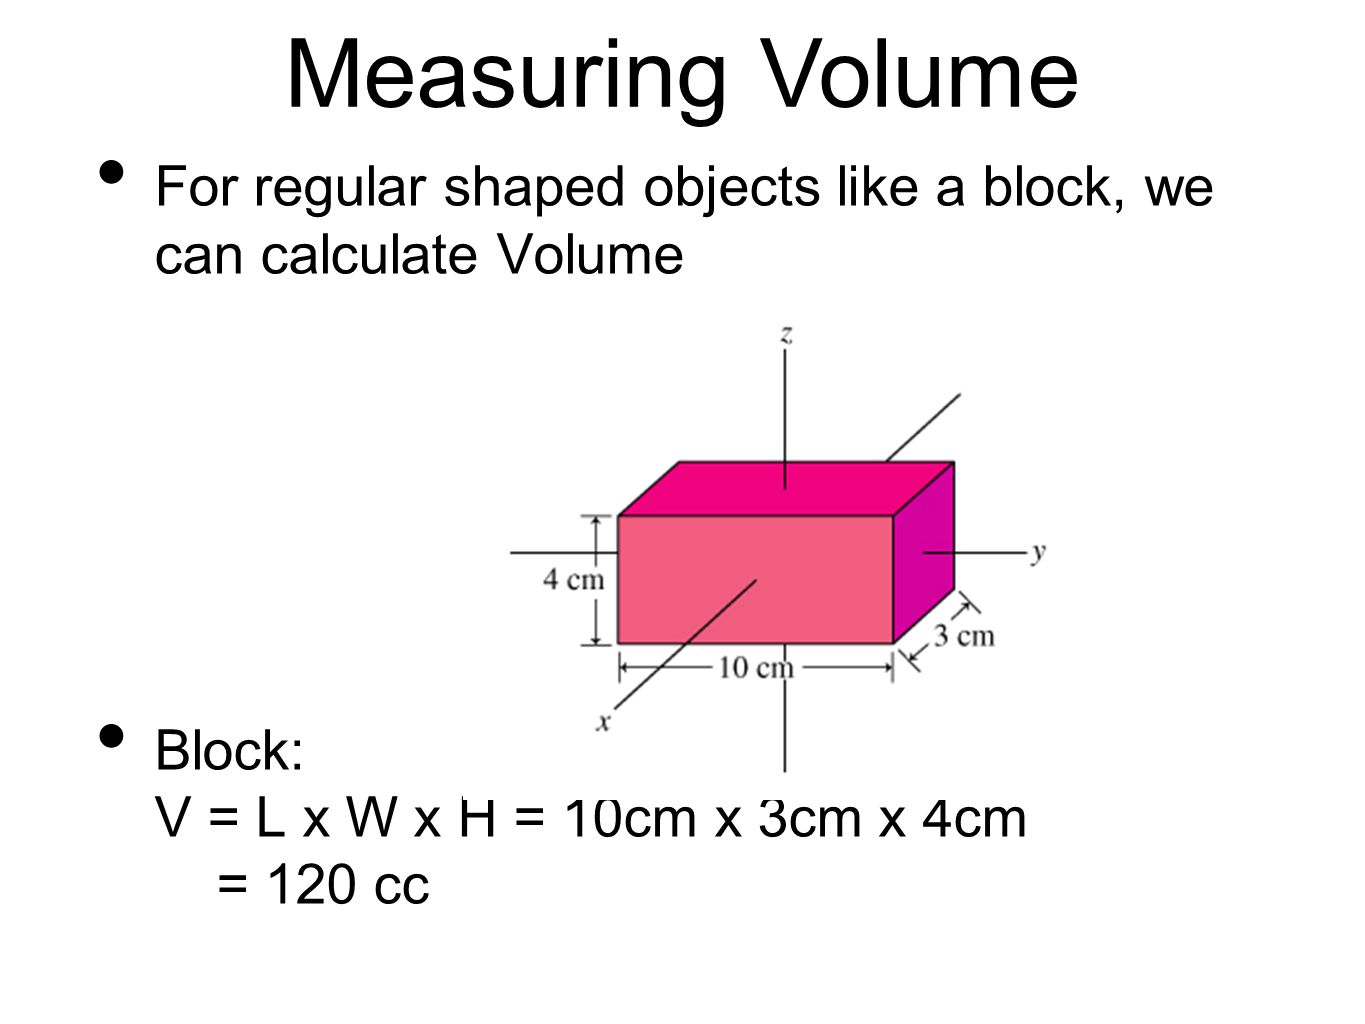 Measuring Volume For regular shaped objects like a block, we can calculate Volume.